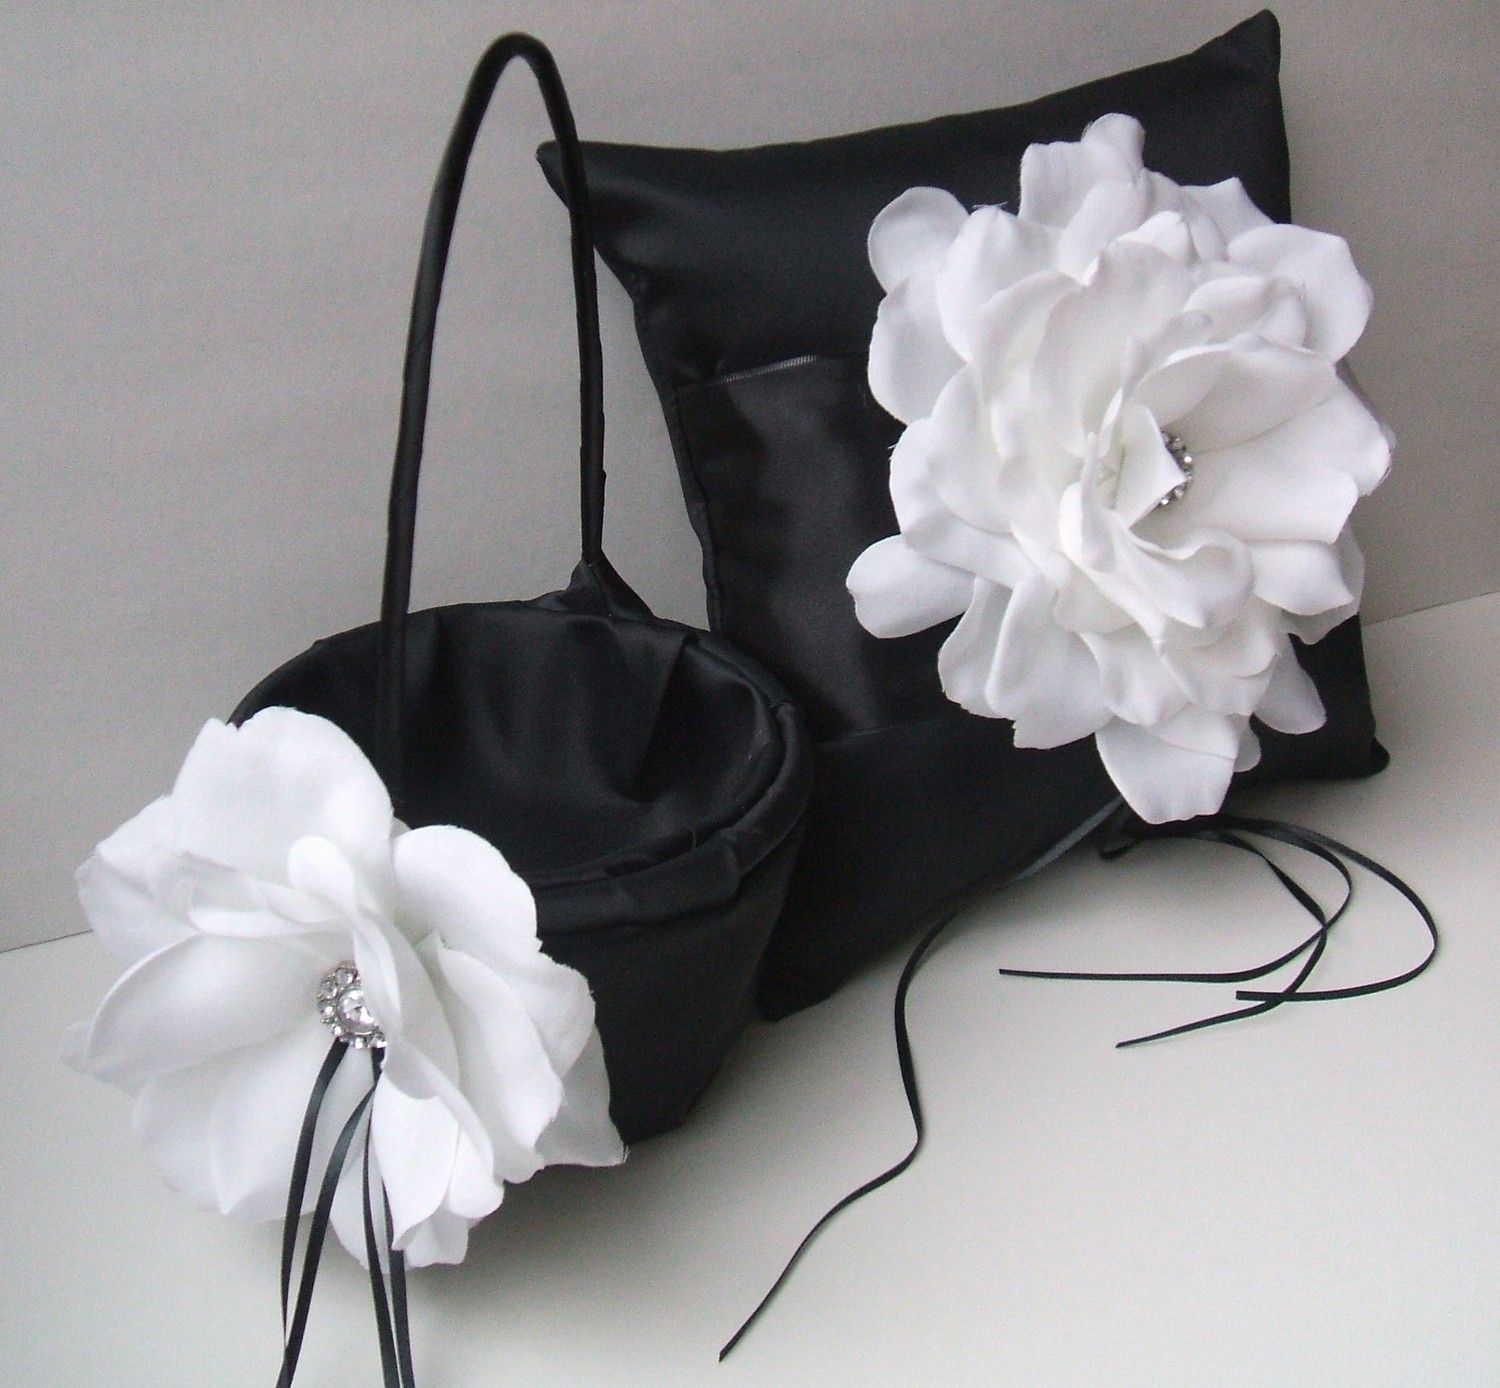 10 Inch Satin And Sash Ring Bearer Pillowflower Girl Basket Set